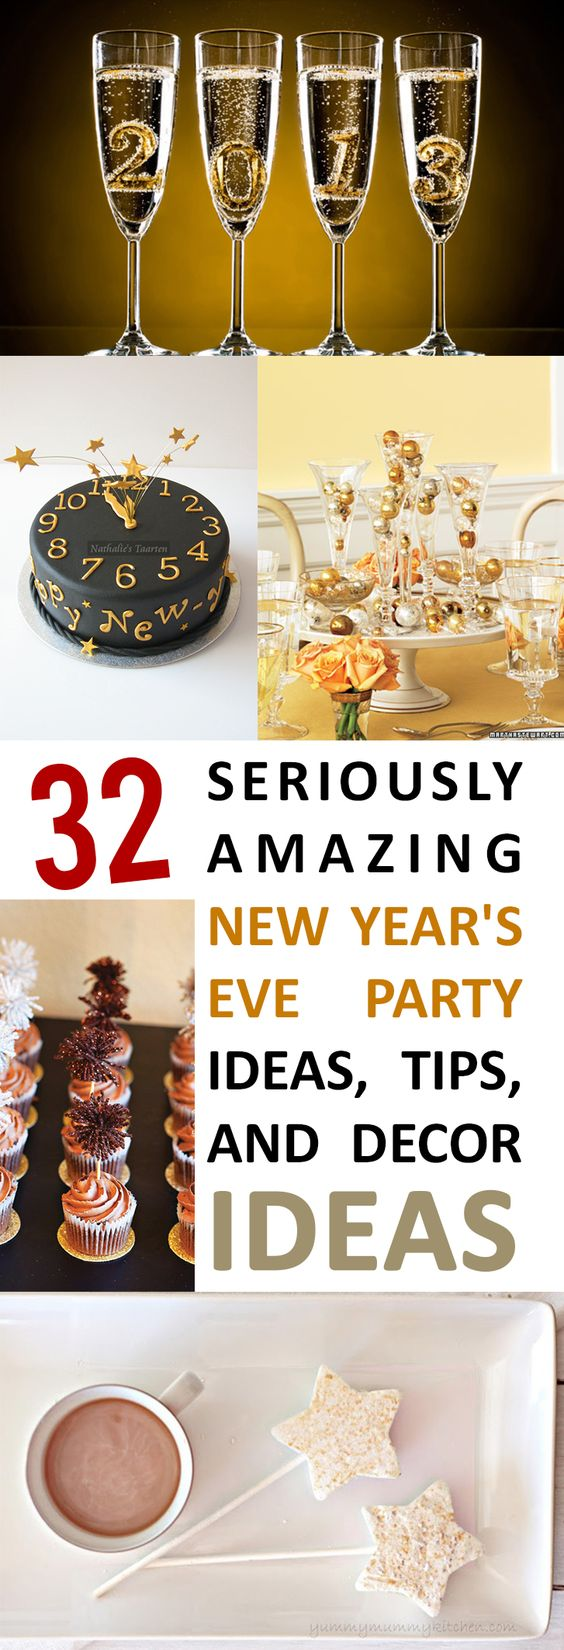 Pinterest the world s catalog of ideas - New years decorations ideas ...